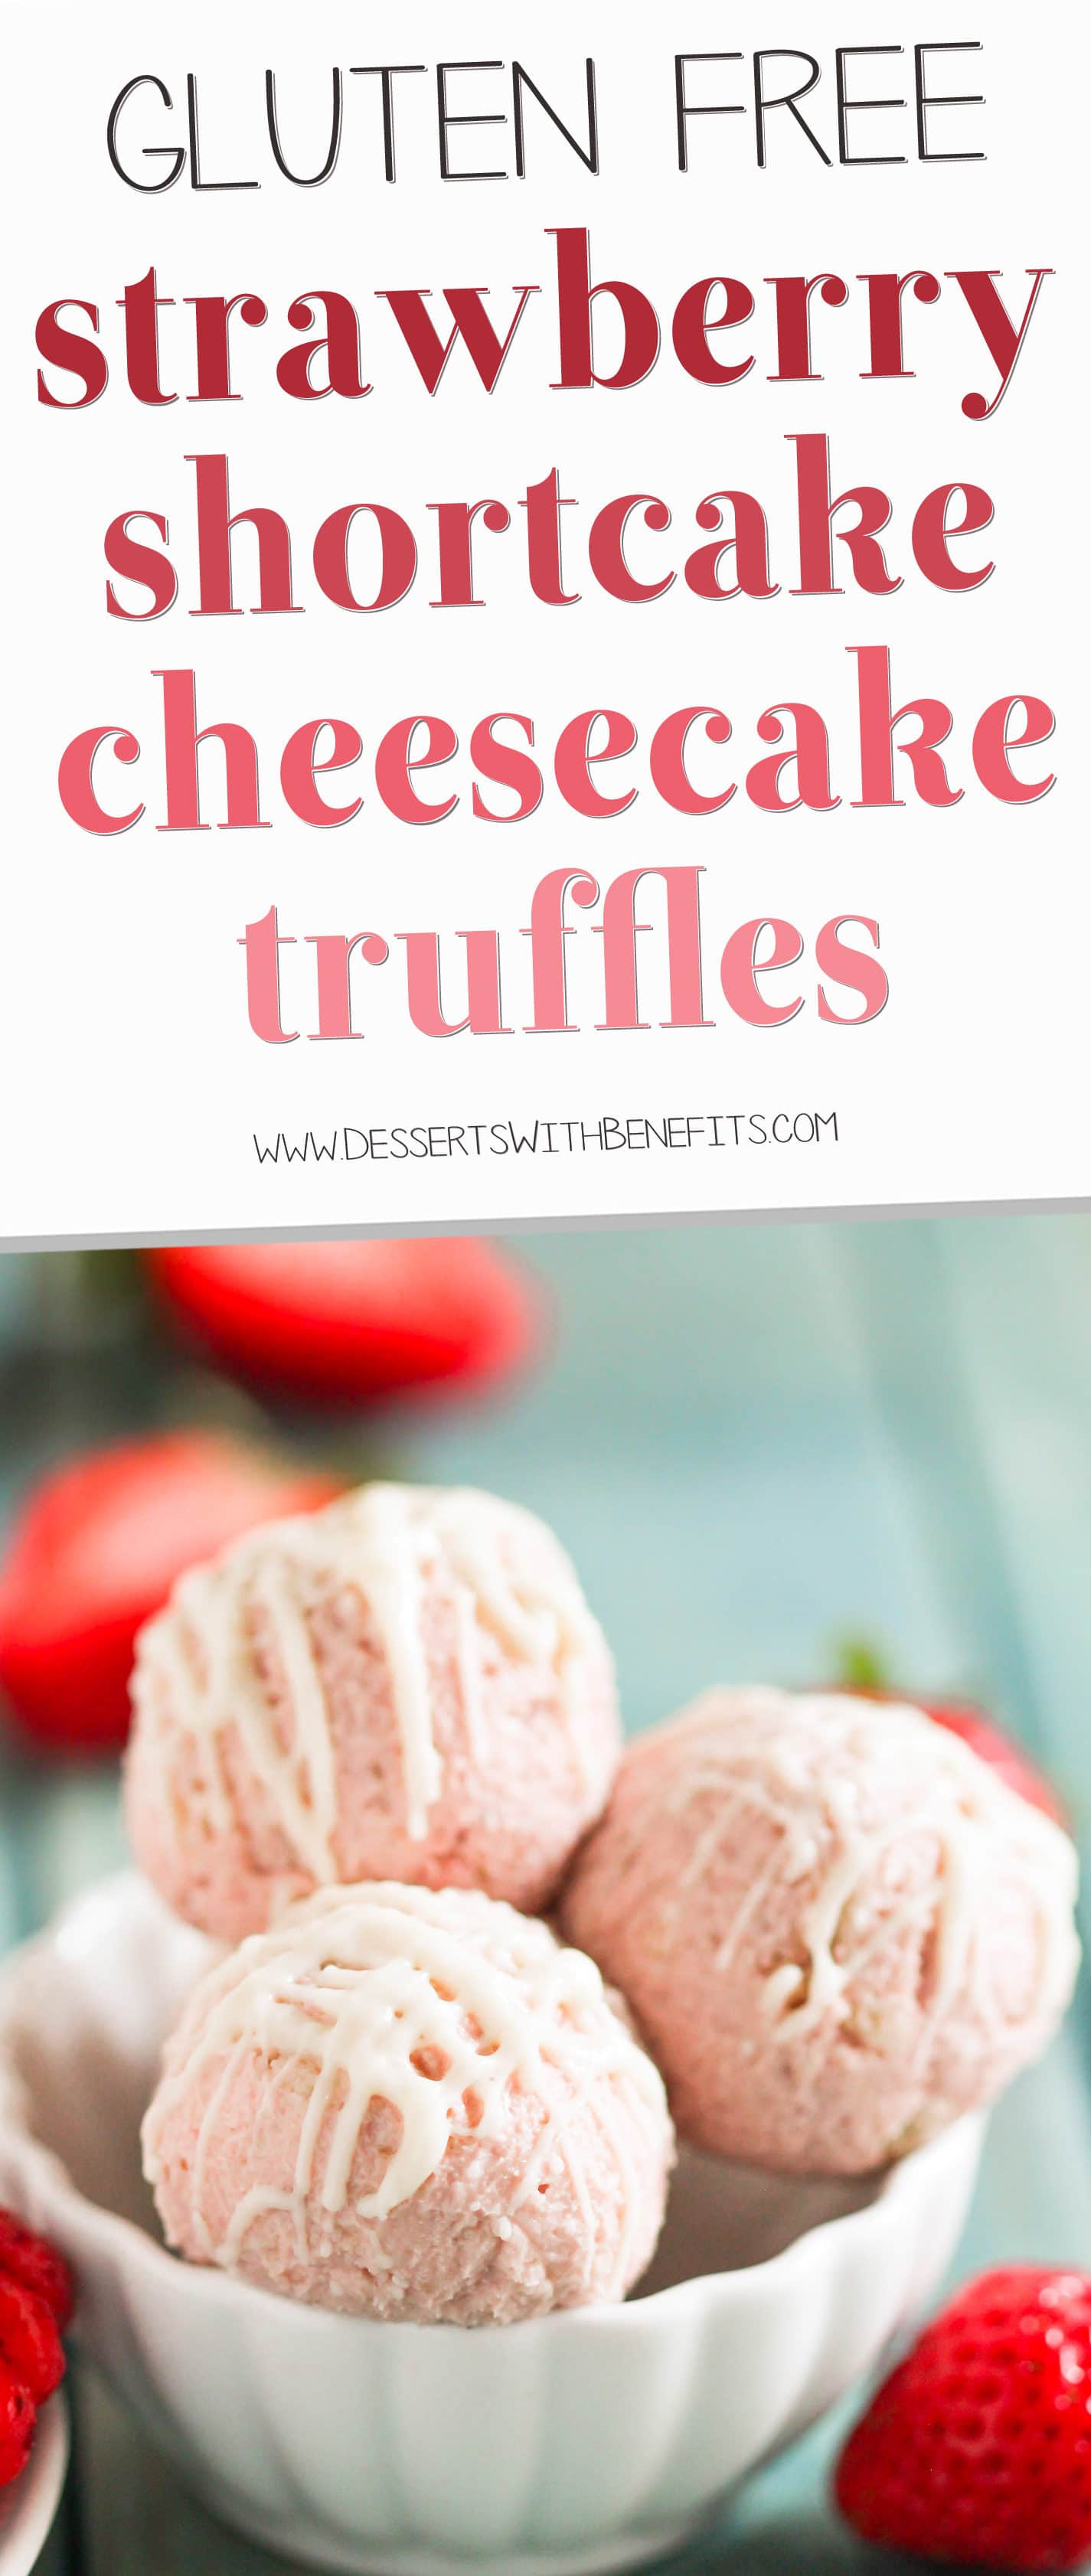 These Gluten Free Strawberry Shortcake Cheesecake Truffles are made with real strawberry cheesecake and sugar cookies chunks, and are coated in rich and delicious white chocolate.  If you're looking for a guilt-free bite-sized treat, you've found it! Healthy Dessert Recipes at the Desserts With Benefits Blog